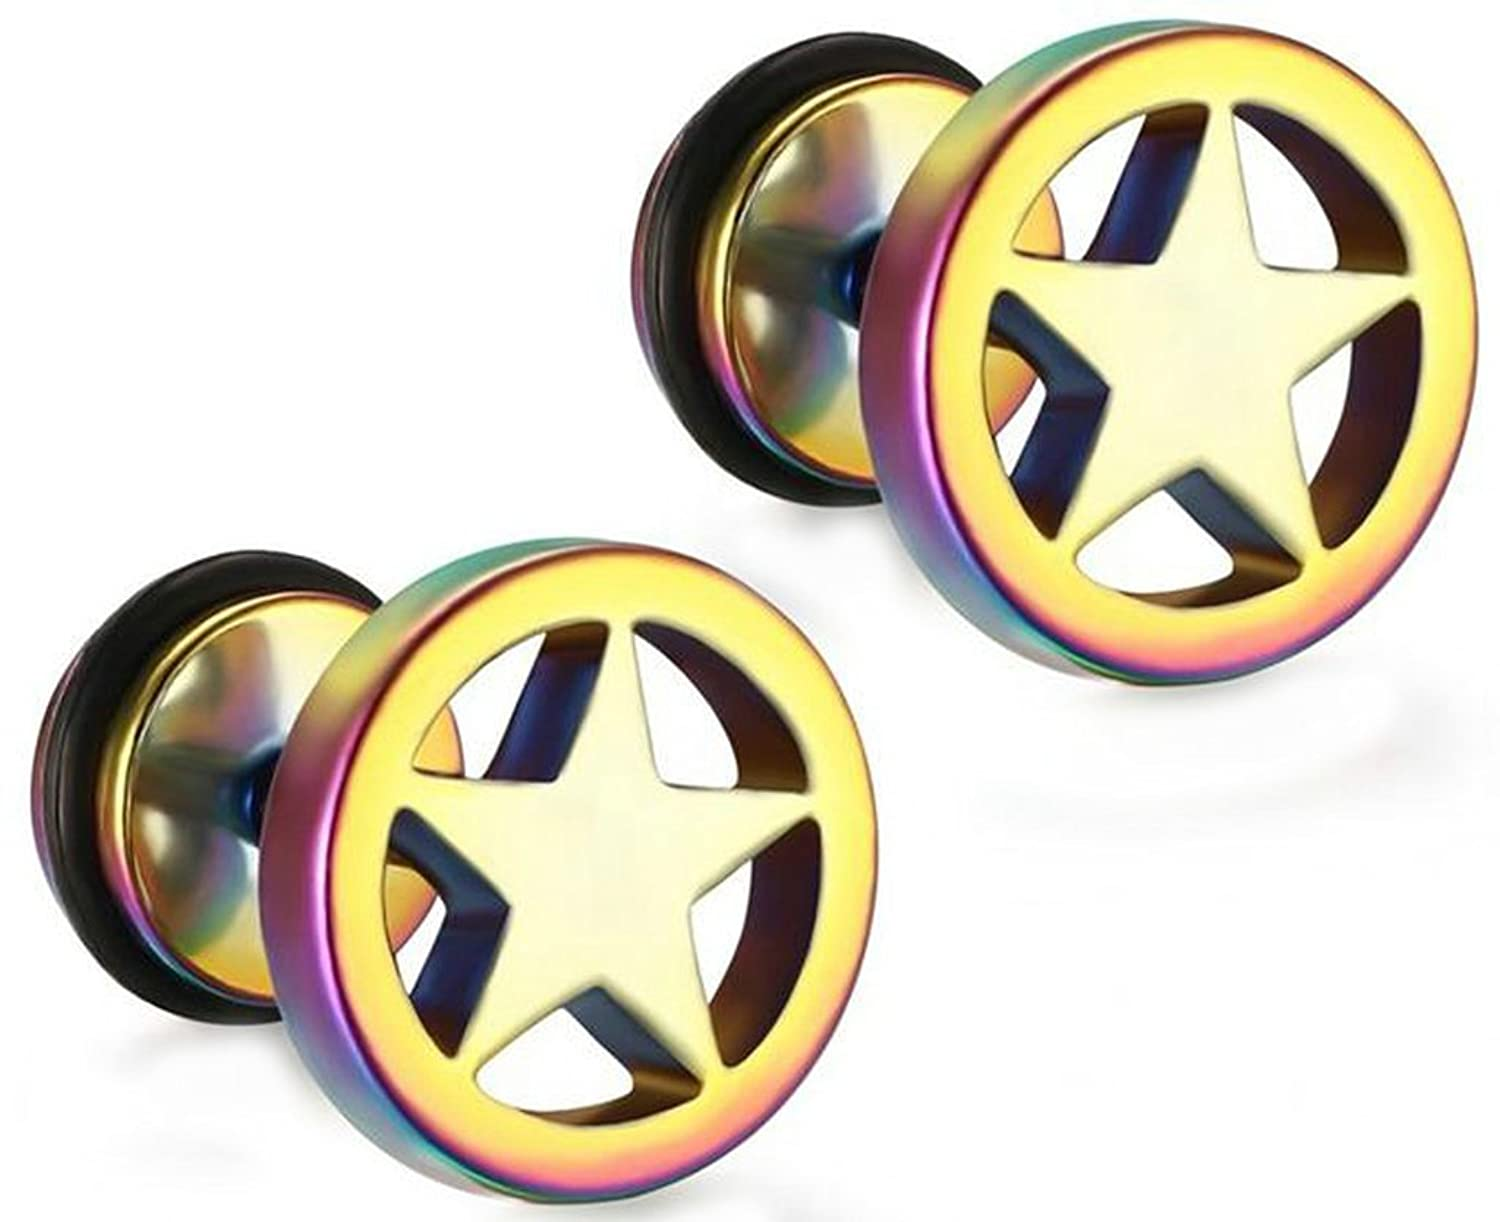 Stainless Steel Earrings, Men Stud Earrings Round Shape The Five-Pointed Star Punk Style Colorful Epinki